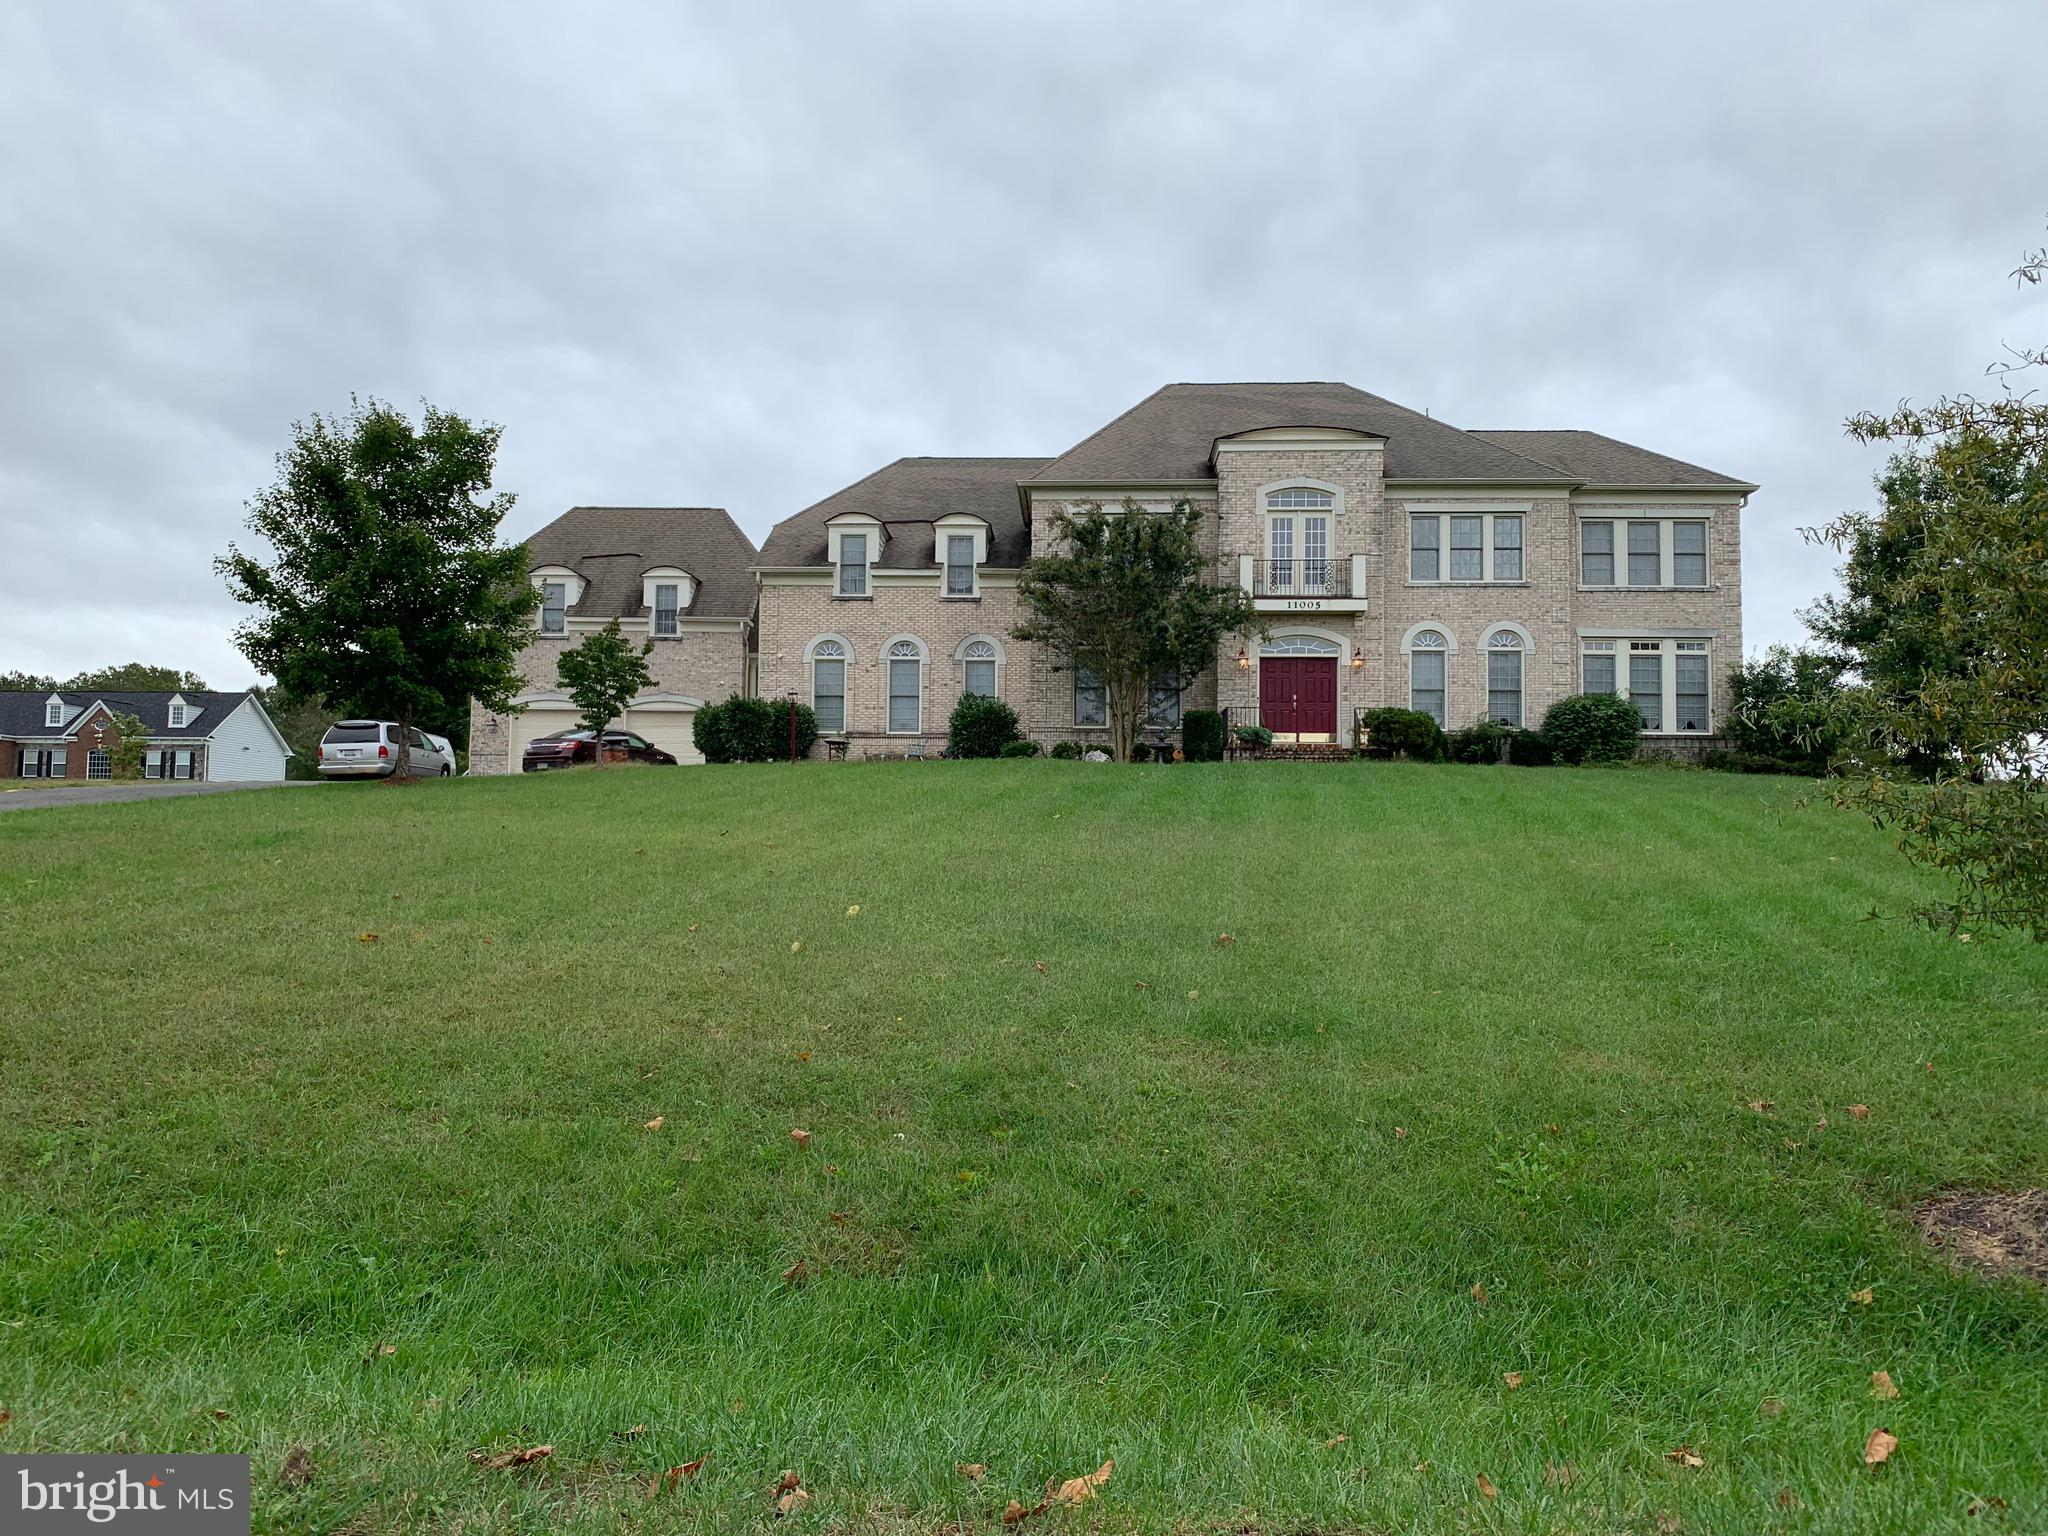 11005 TULIP HILL LANE, UPPER MARLBORO, MD 20772